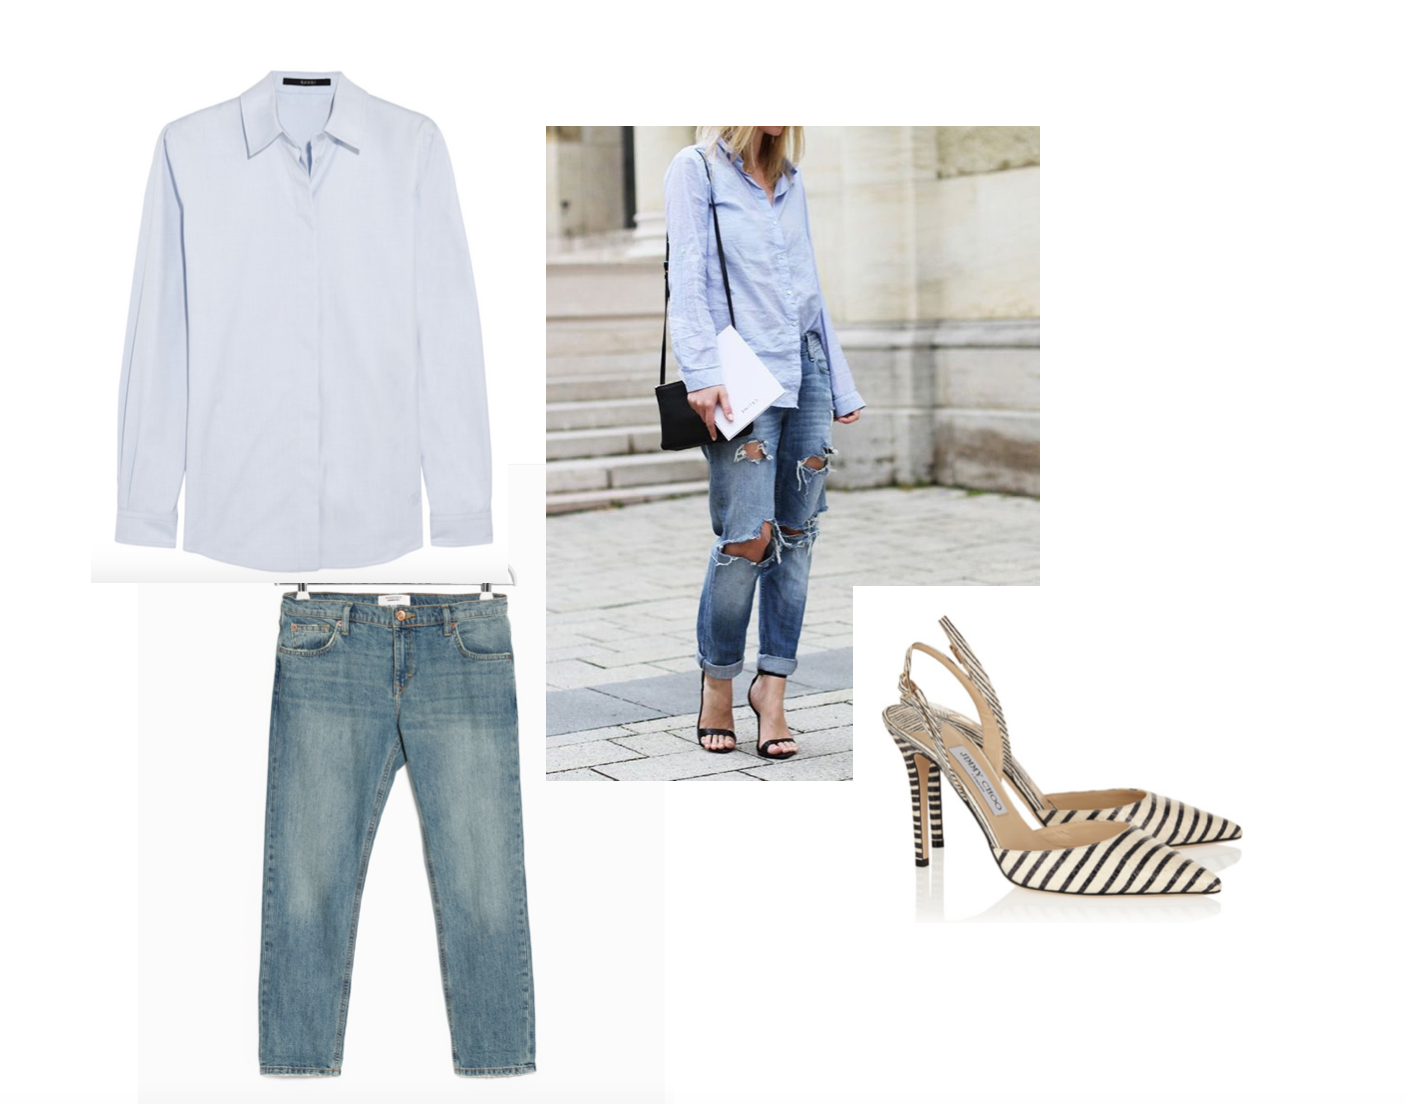 outfit_inspiration_relaxed_denim_itslilylocket_lucymason